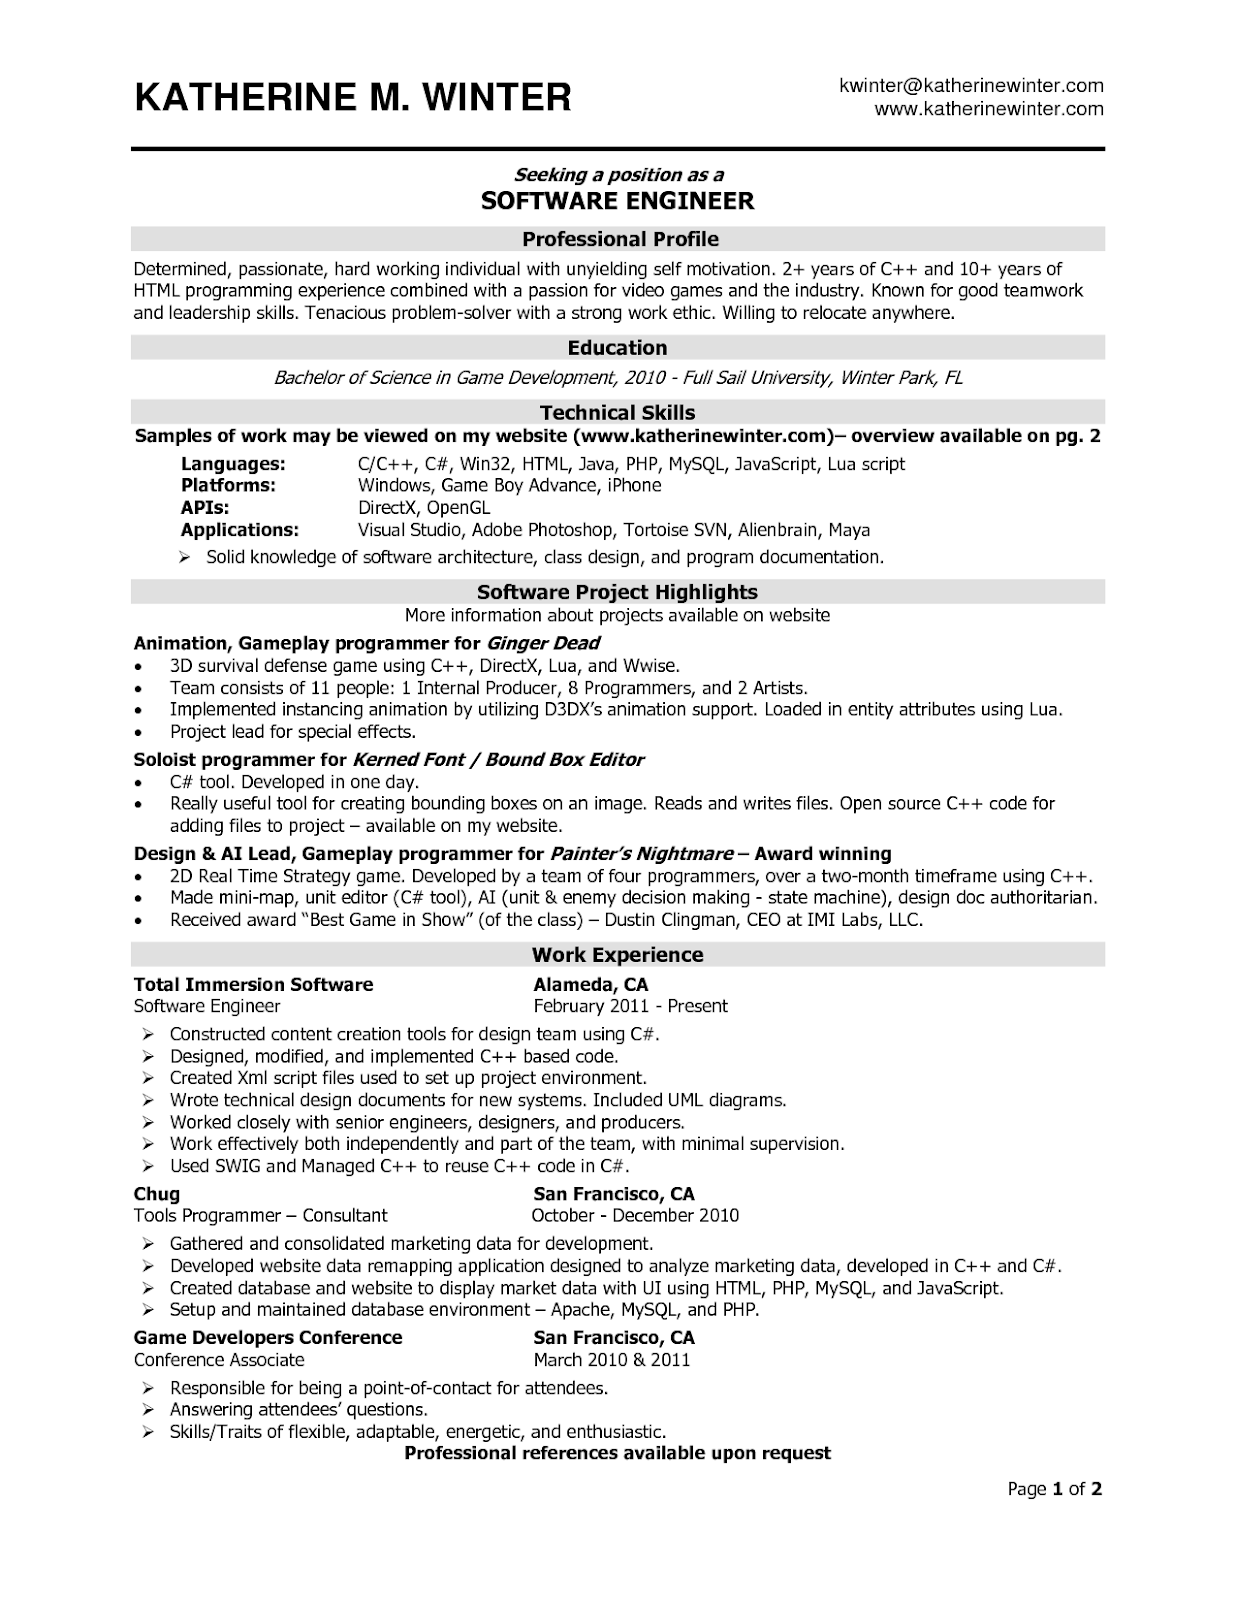 Resume Resume Example Monash doc 12401754 how to write a cover letter monash uni resume template university monash